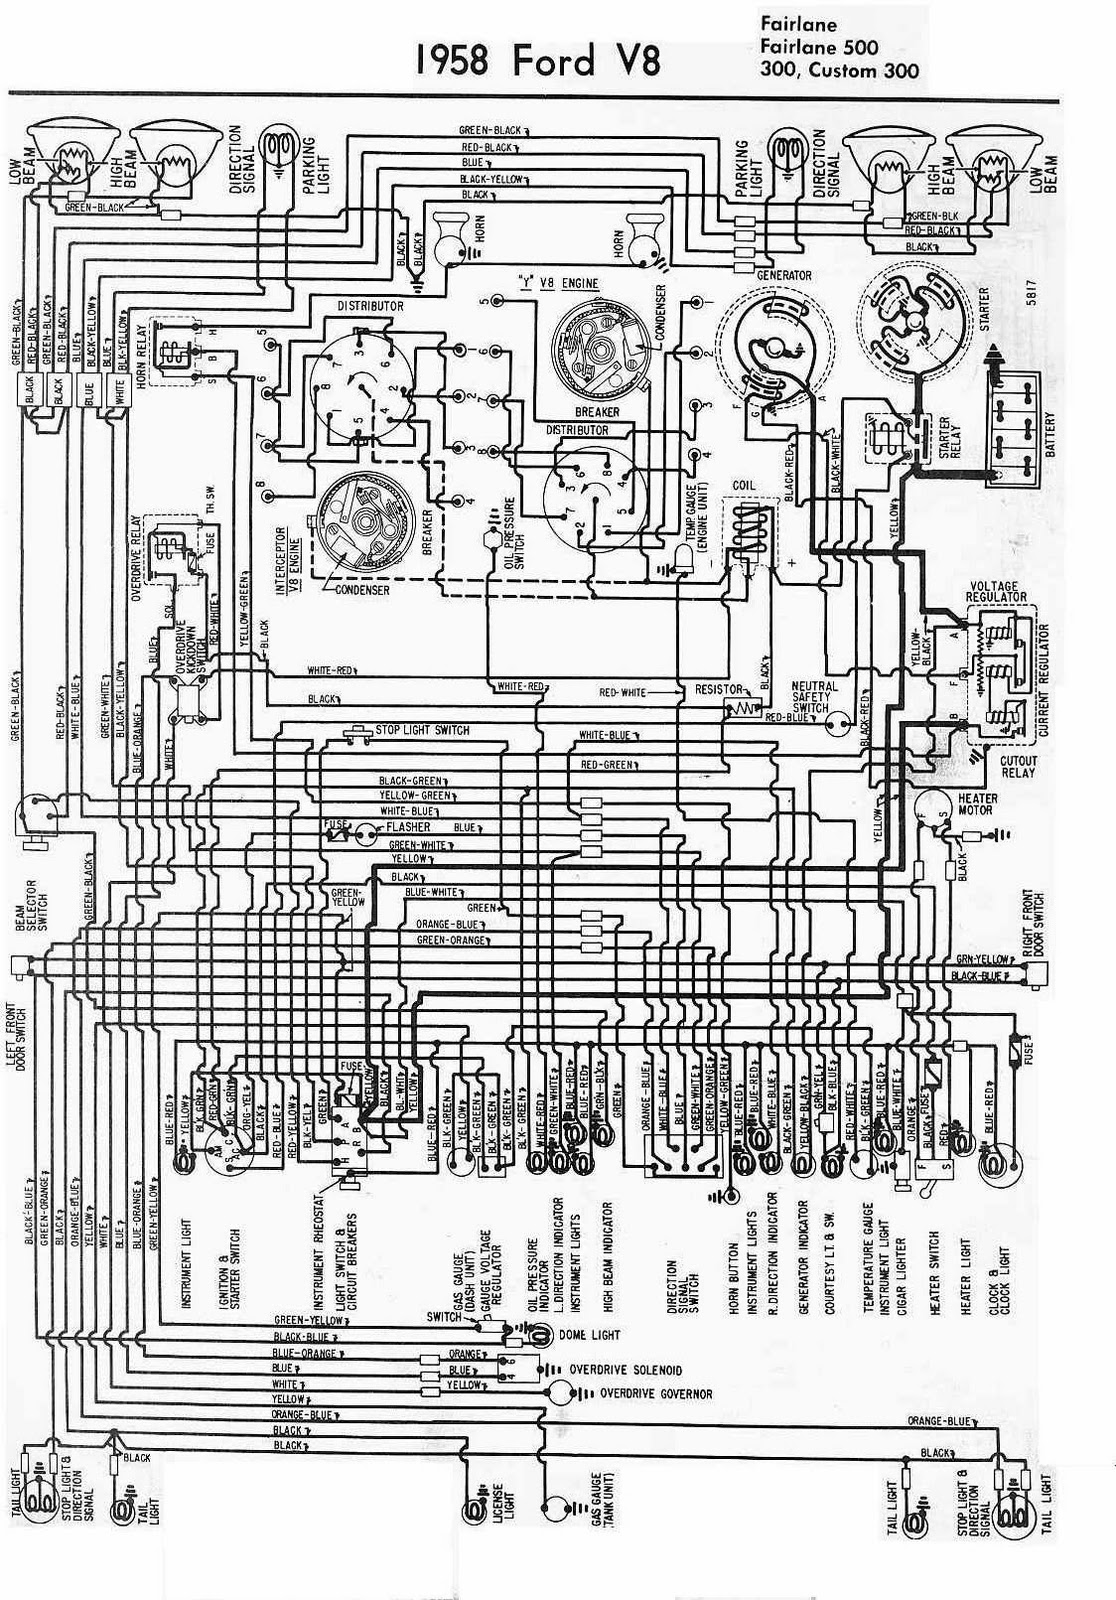 Fantastic 289 Spark Plug Wiring Diagram Image Collection - Wiring ...